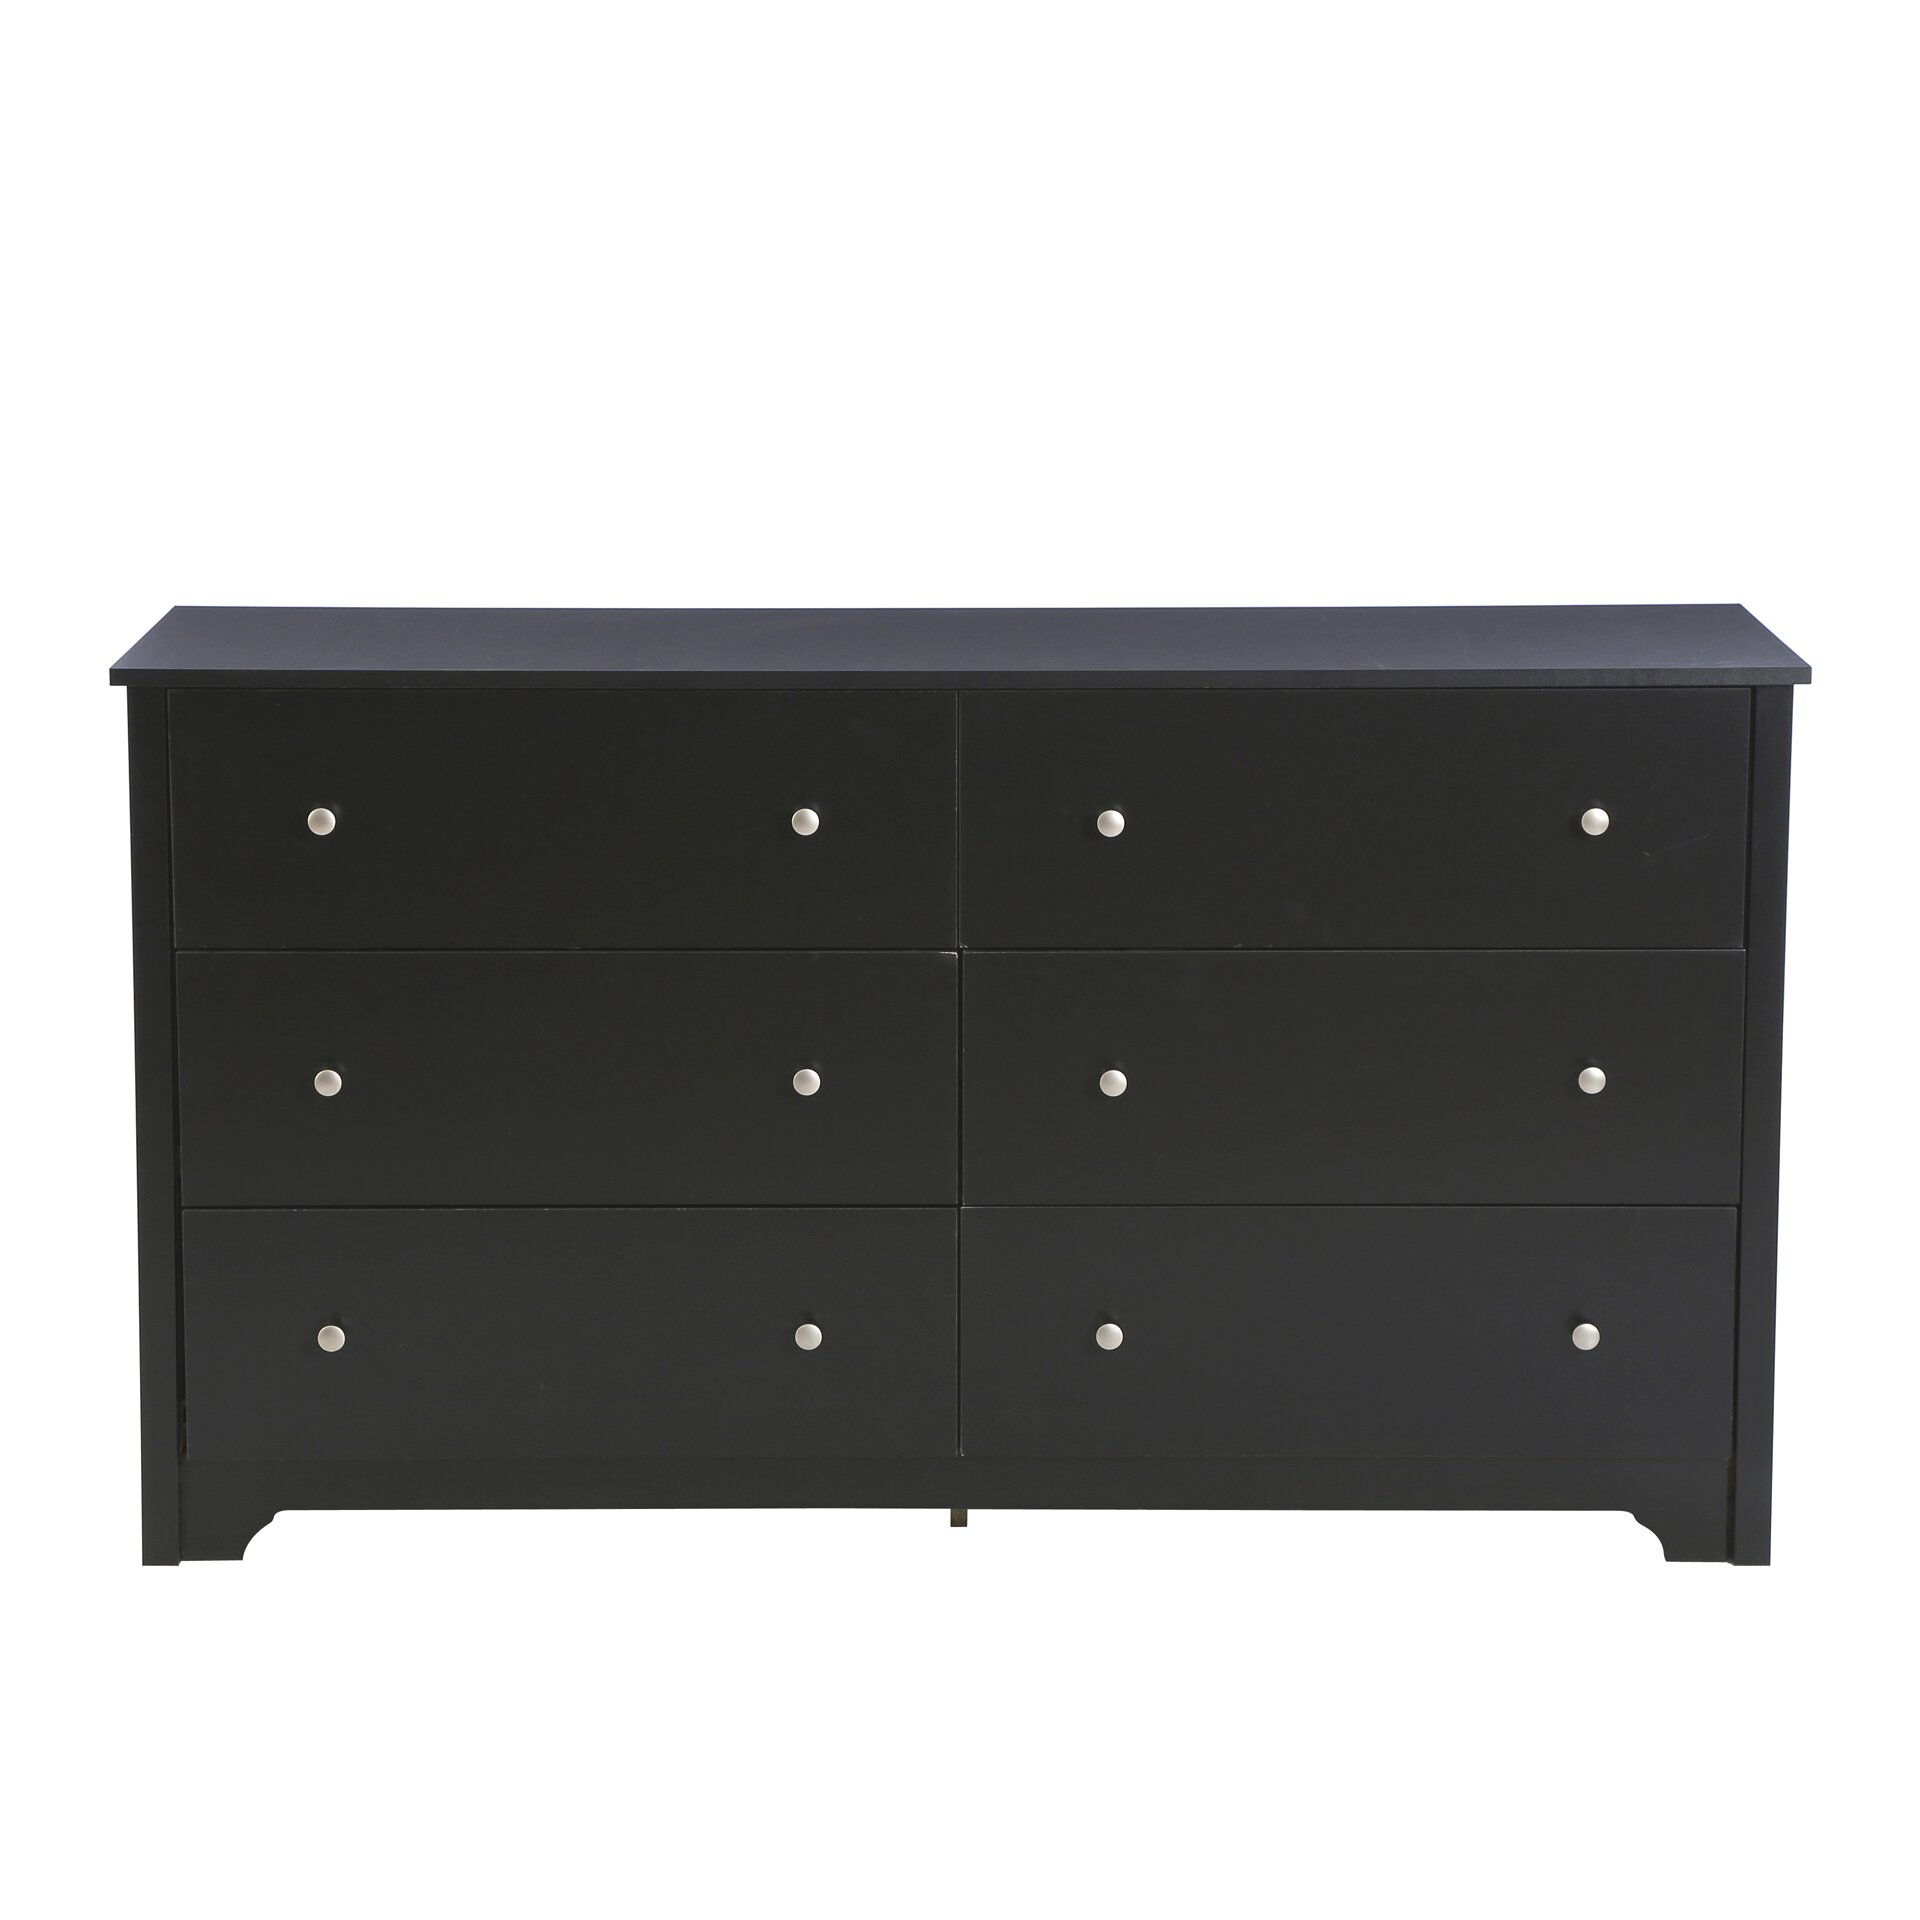 #71685A South Shore Vito 6 Drawer Double Dresser In Pure Black & Reviews  with 1920x1920 px of Most Effective 6 Drawer Black Dresser 19201920 wallpaper @ avoidforclosure.info